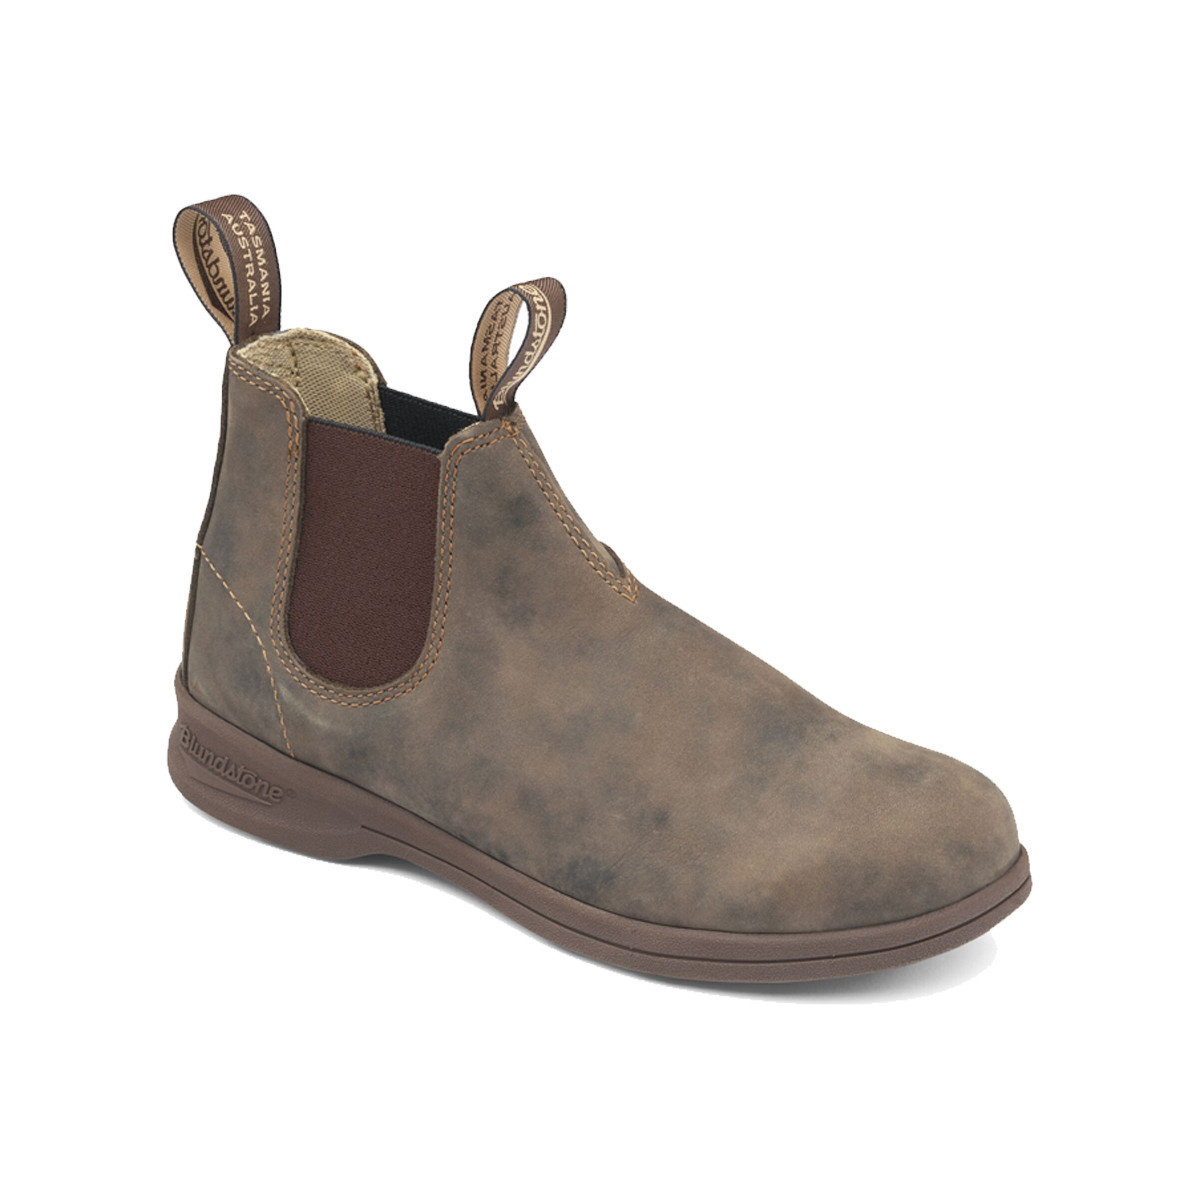 Blundstone Blundstone 1496 Unisex Active Leather Rustic Brown